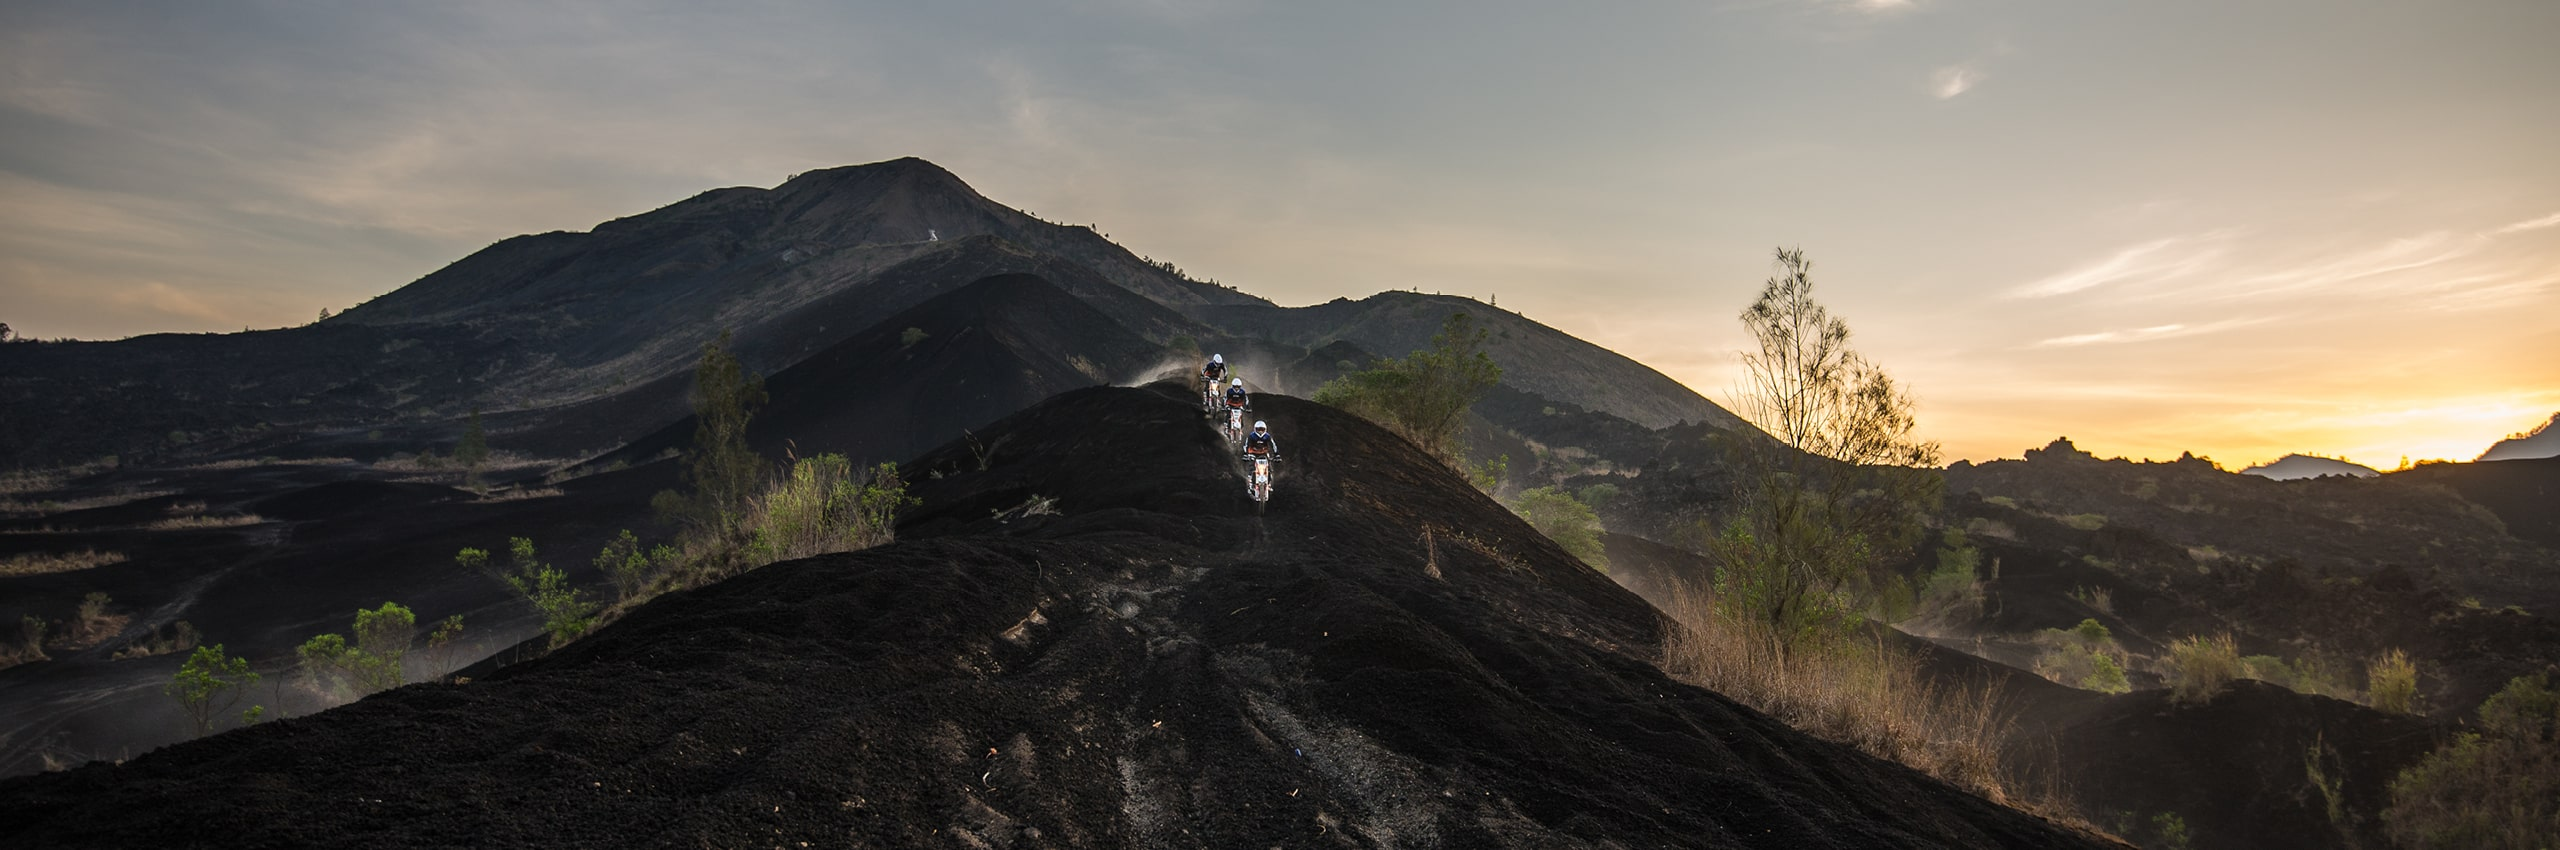 Bali_Dirt_Bikes_Kintamani_Black_Lava_Slider7